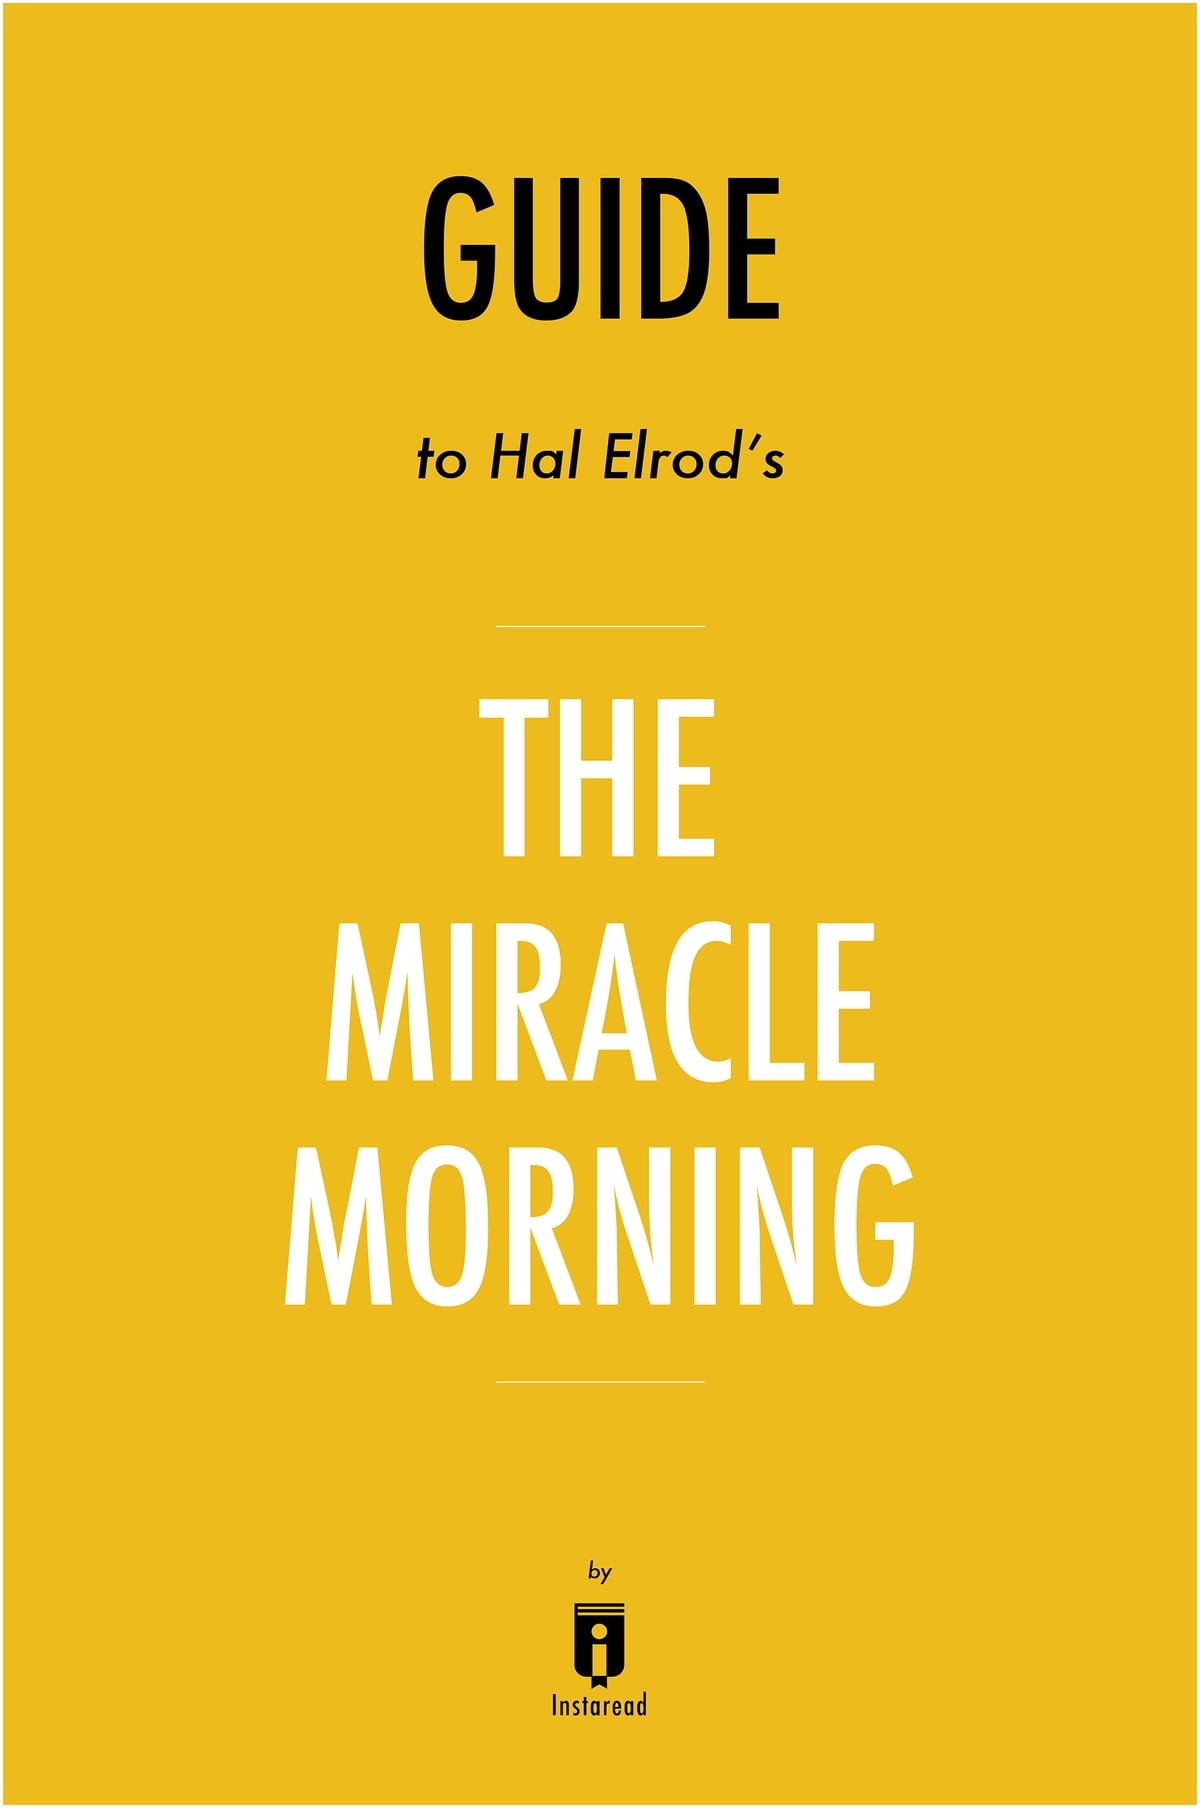 The artists way ebook by julia cameron 9781101156889 rakuten kobo guide to hal elrods the miracle morning by instaread ebook by instaread fandeluxe Image collections